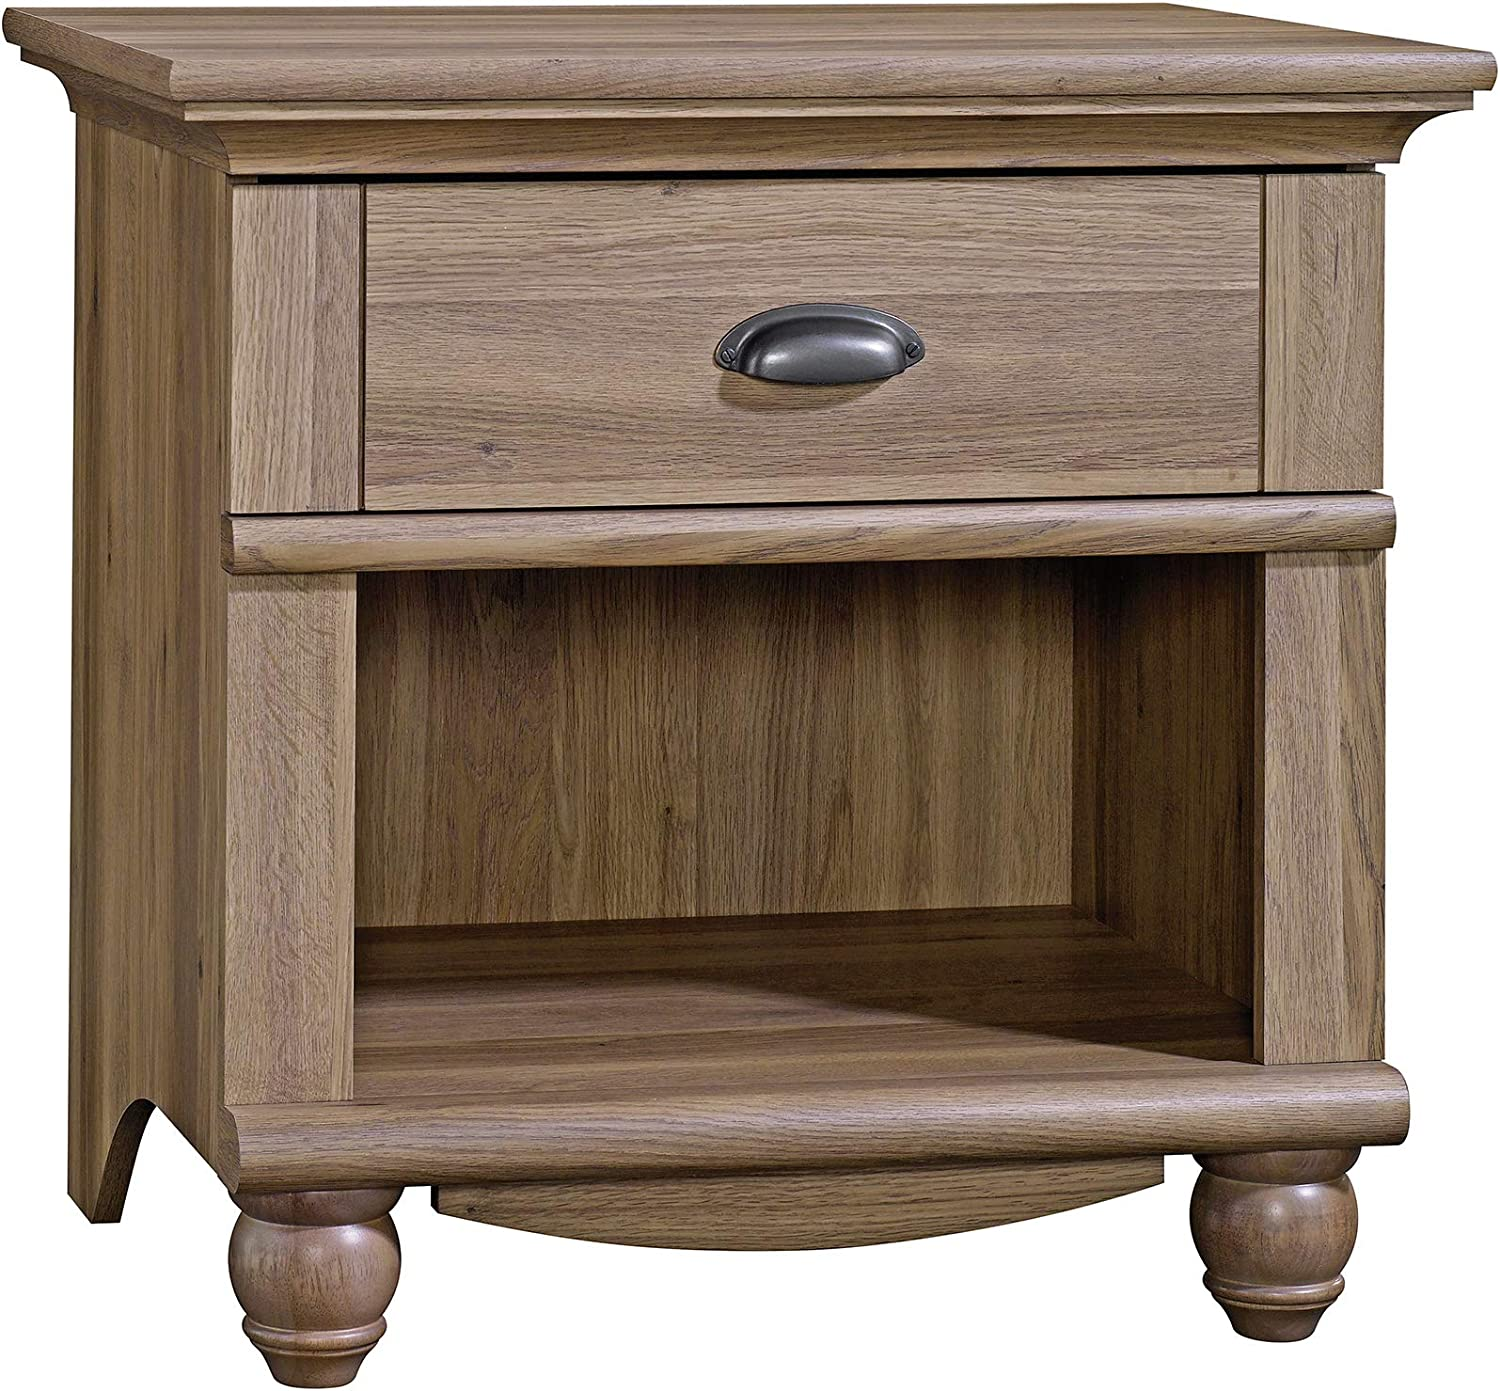 Sauder Harbor View Night Stand, Salt Oak finish